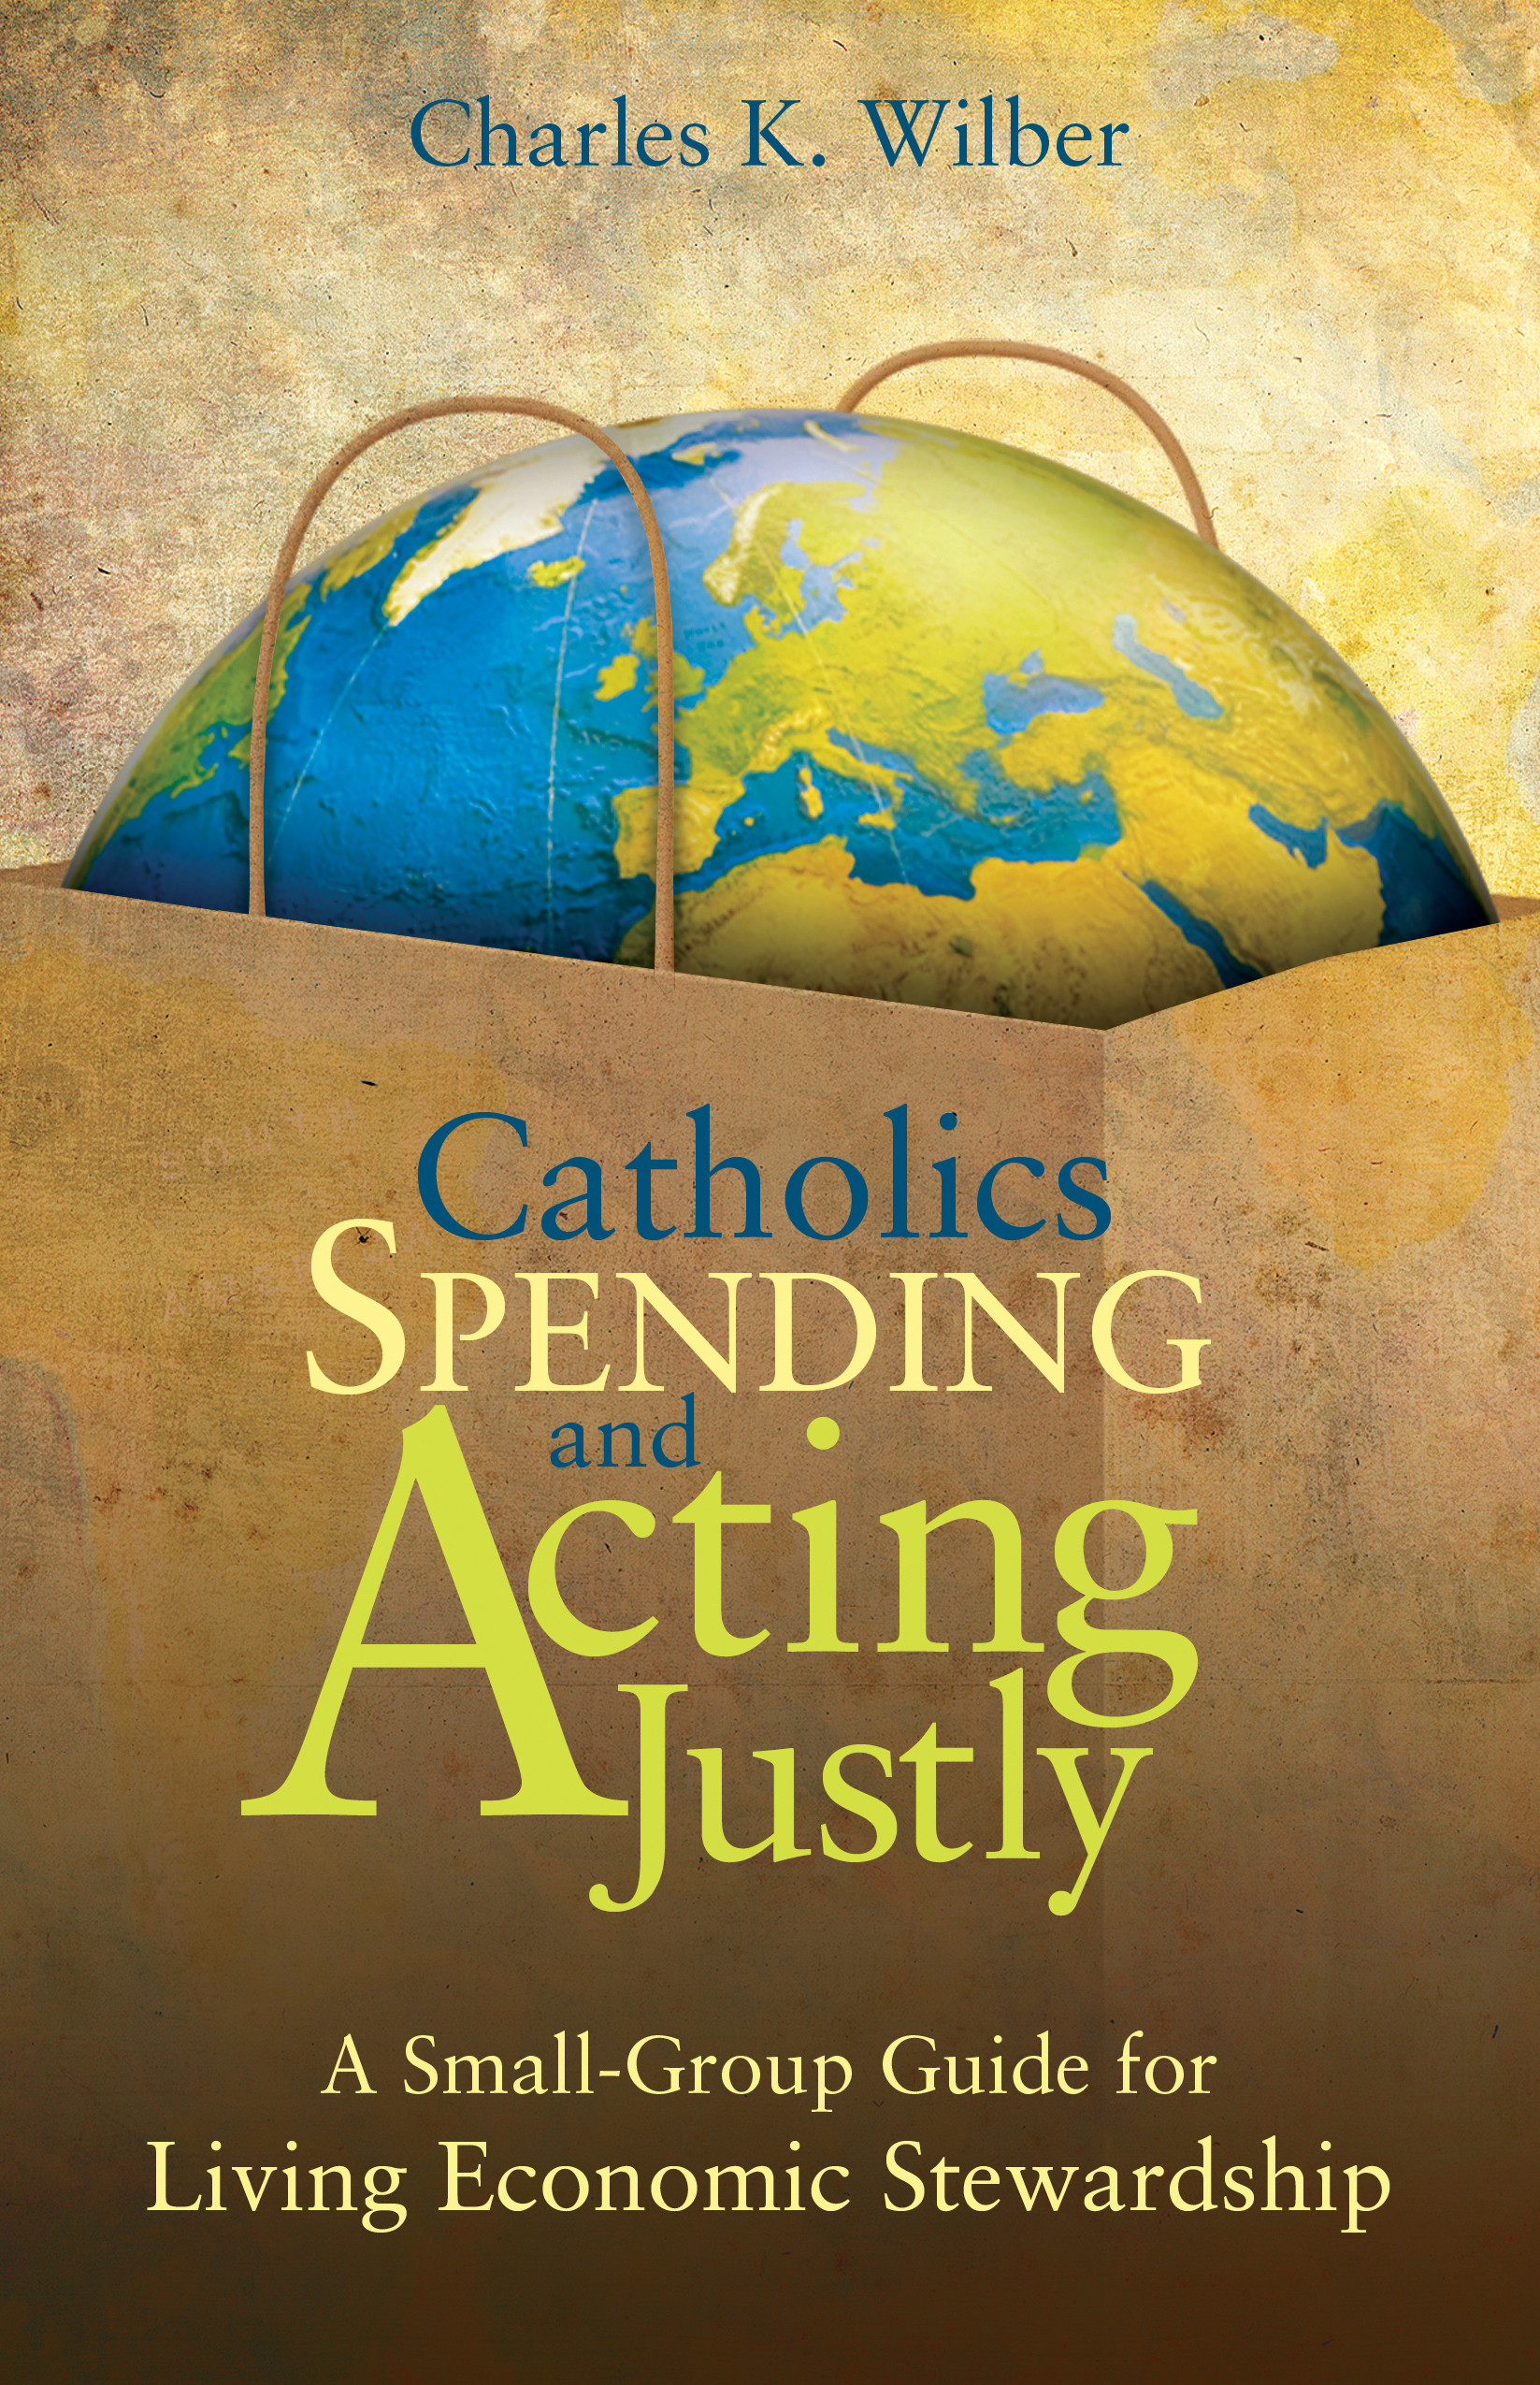 Catholics Spending and Acting Justly